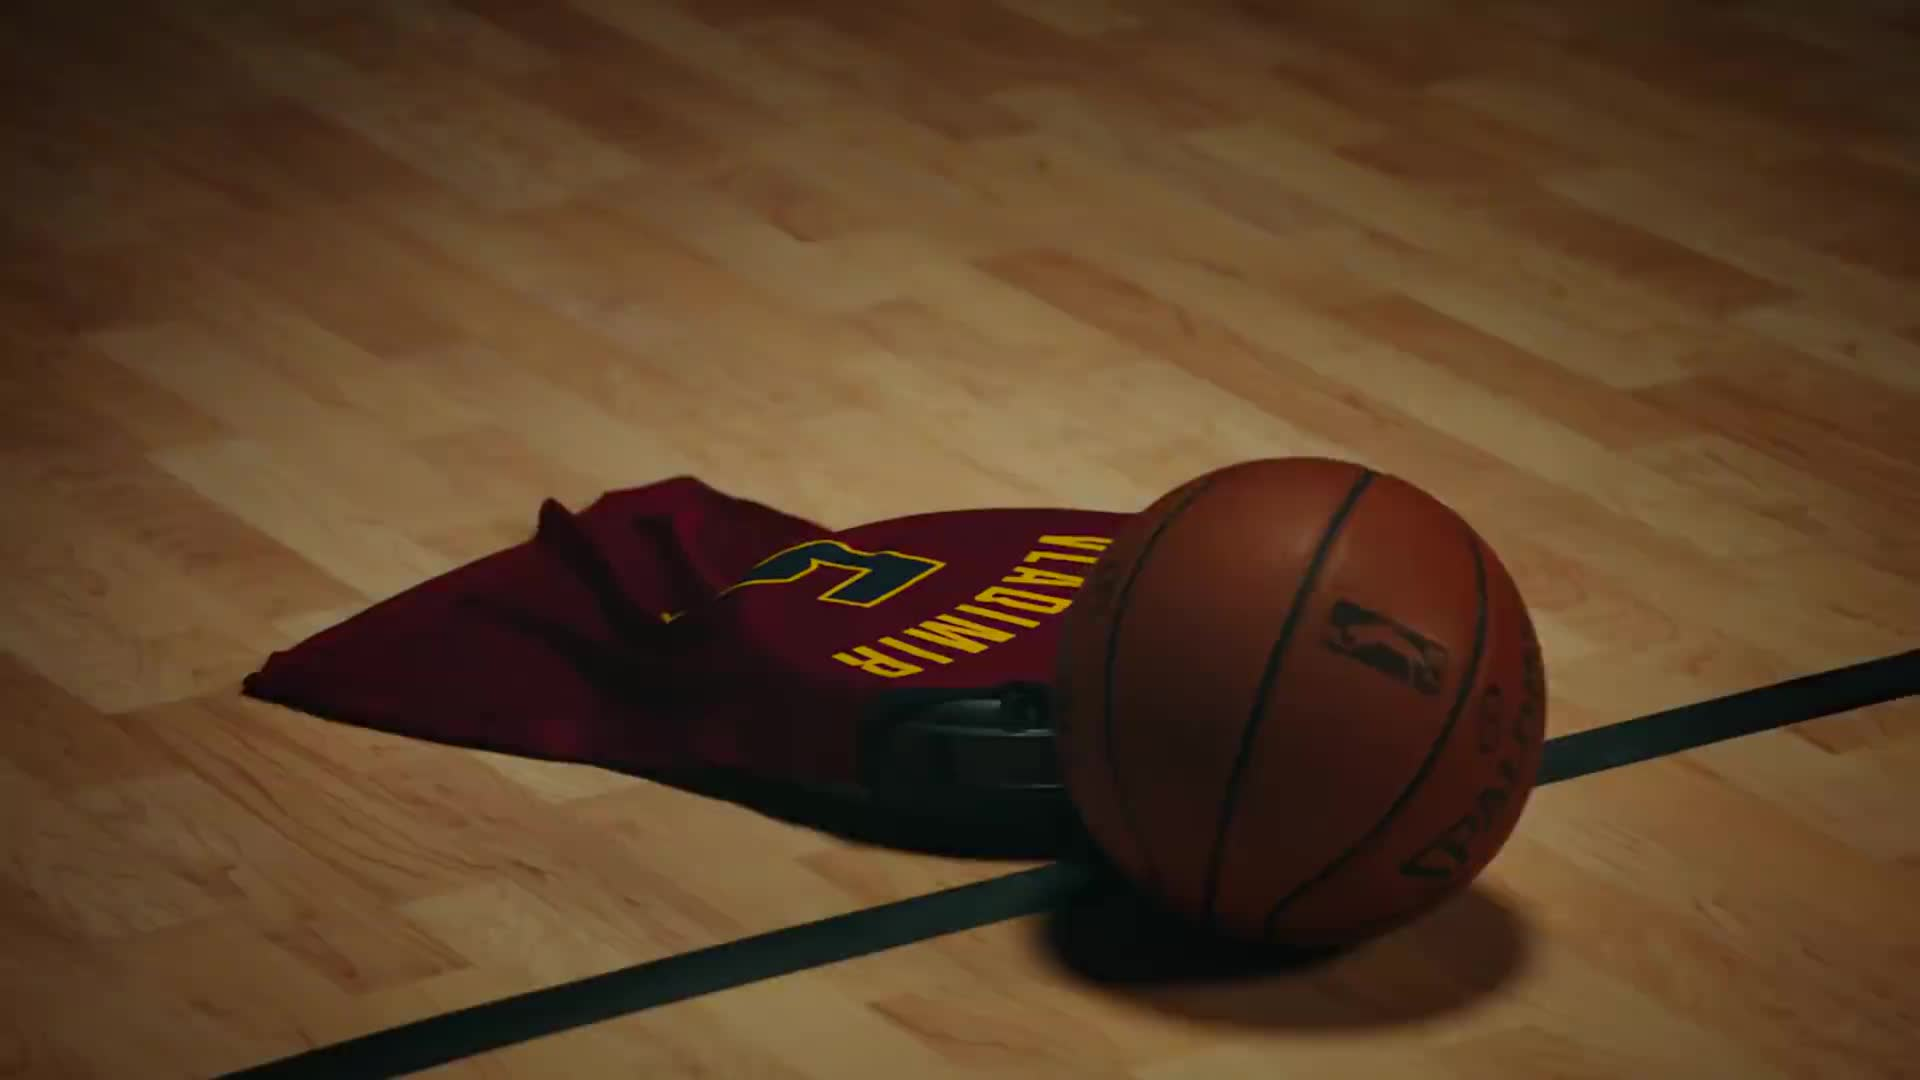 2f7594e0c22a Cut for Time  Cleveland Cavs Promo - SNL GIF